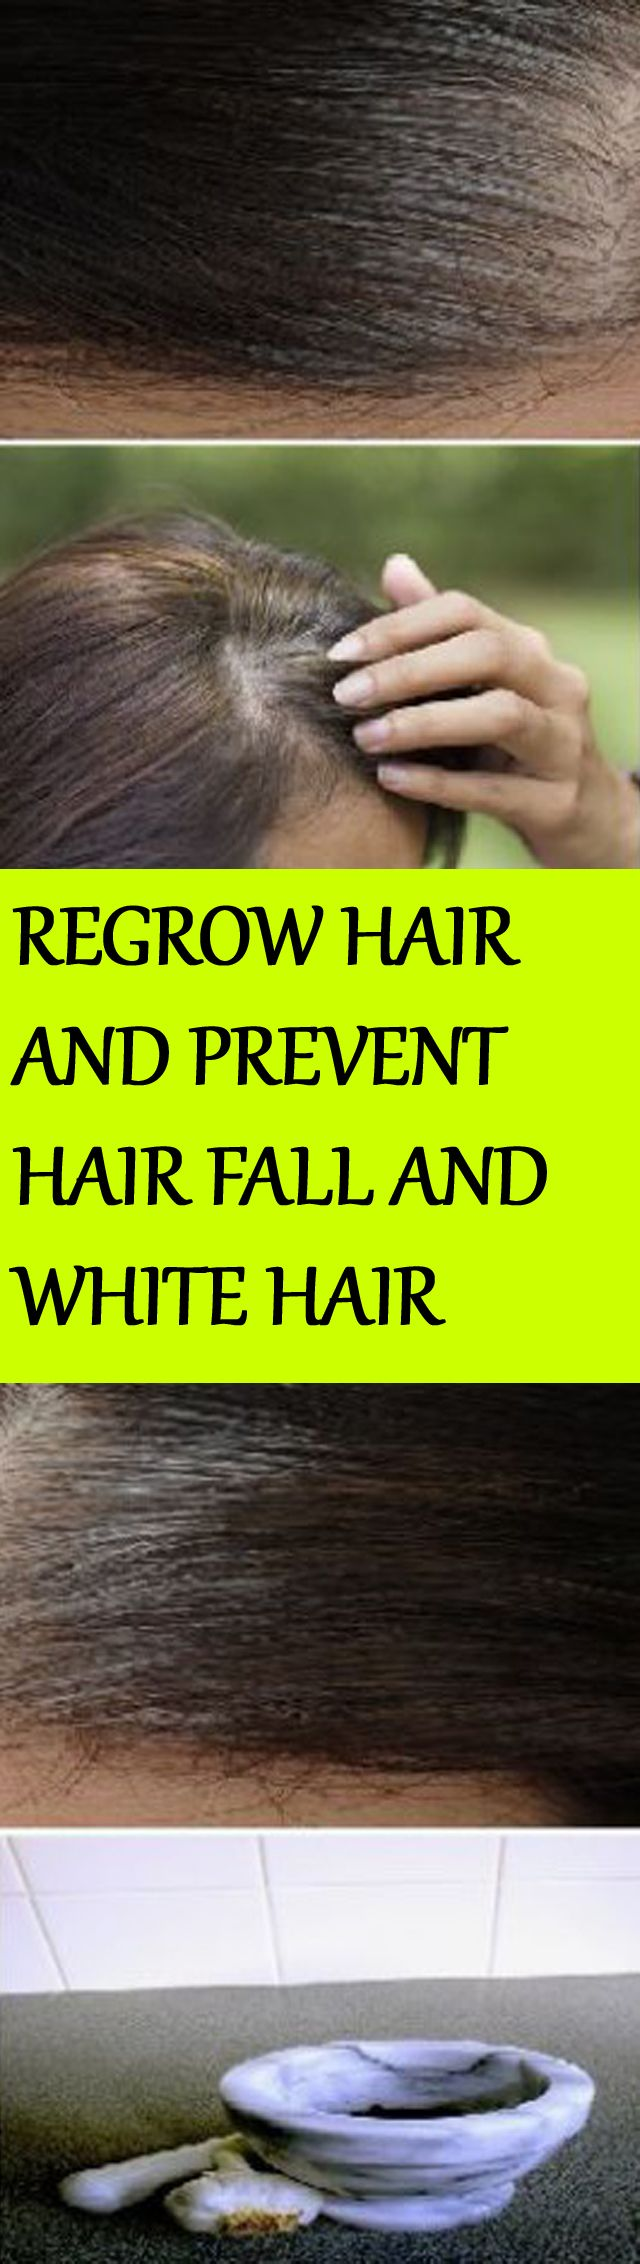 Natural Ways To Darken Hair Permanently